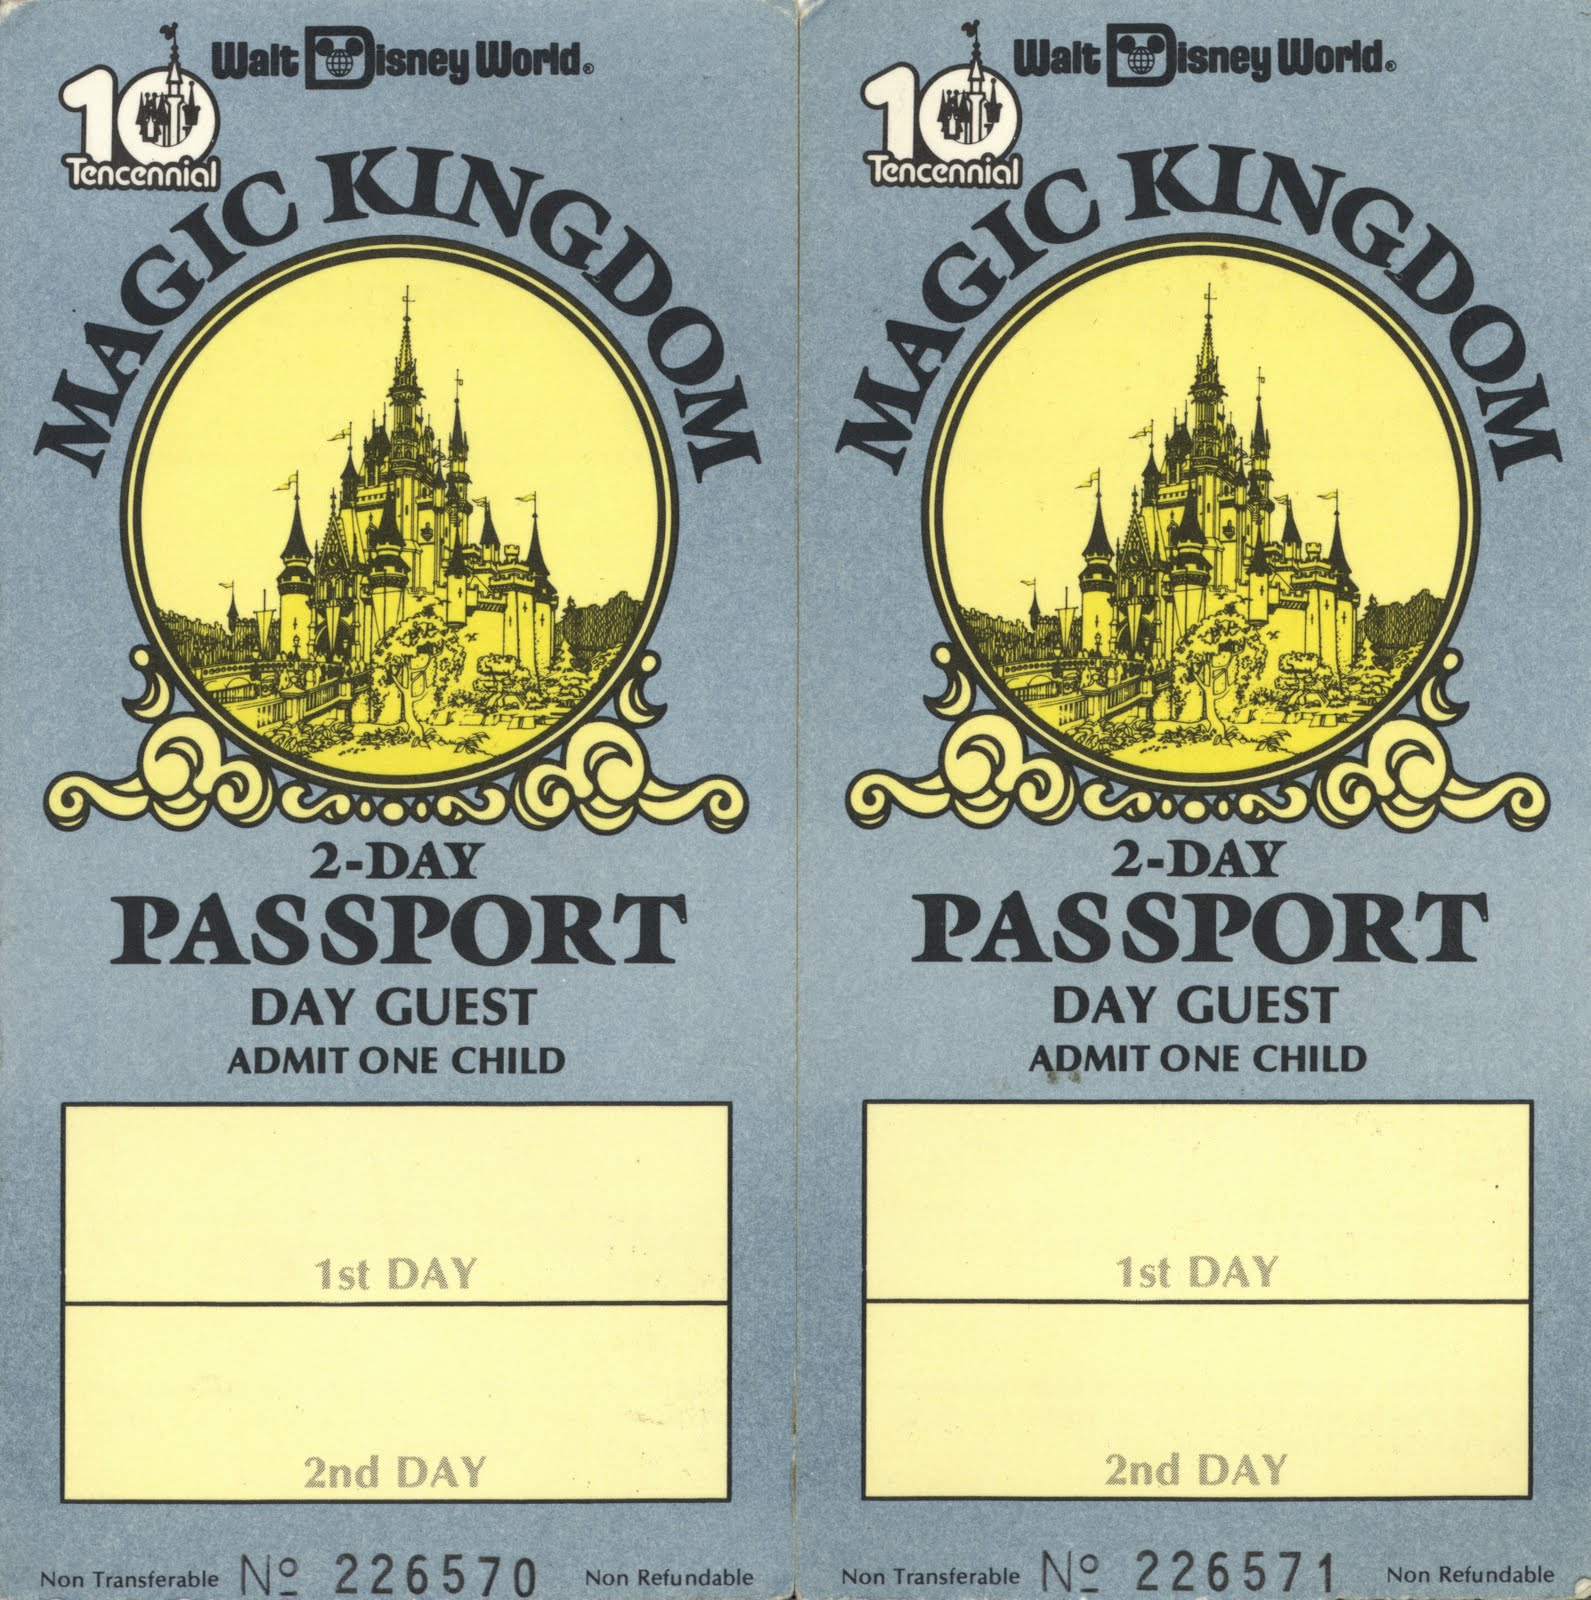 From Walt Disney Words Tencennial Heres A Couple Of Child 2 Day Passports The Date Should Be Stamped On These Since They Appear To Have Been Used